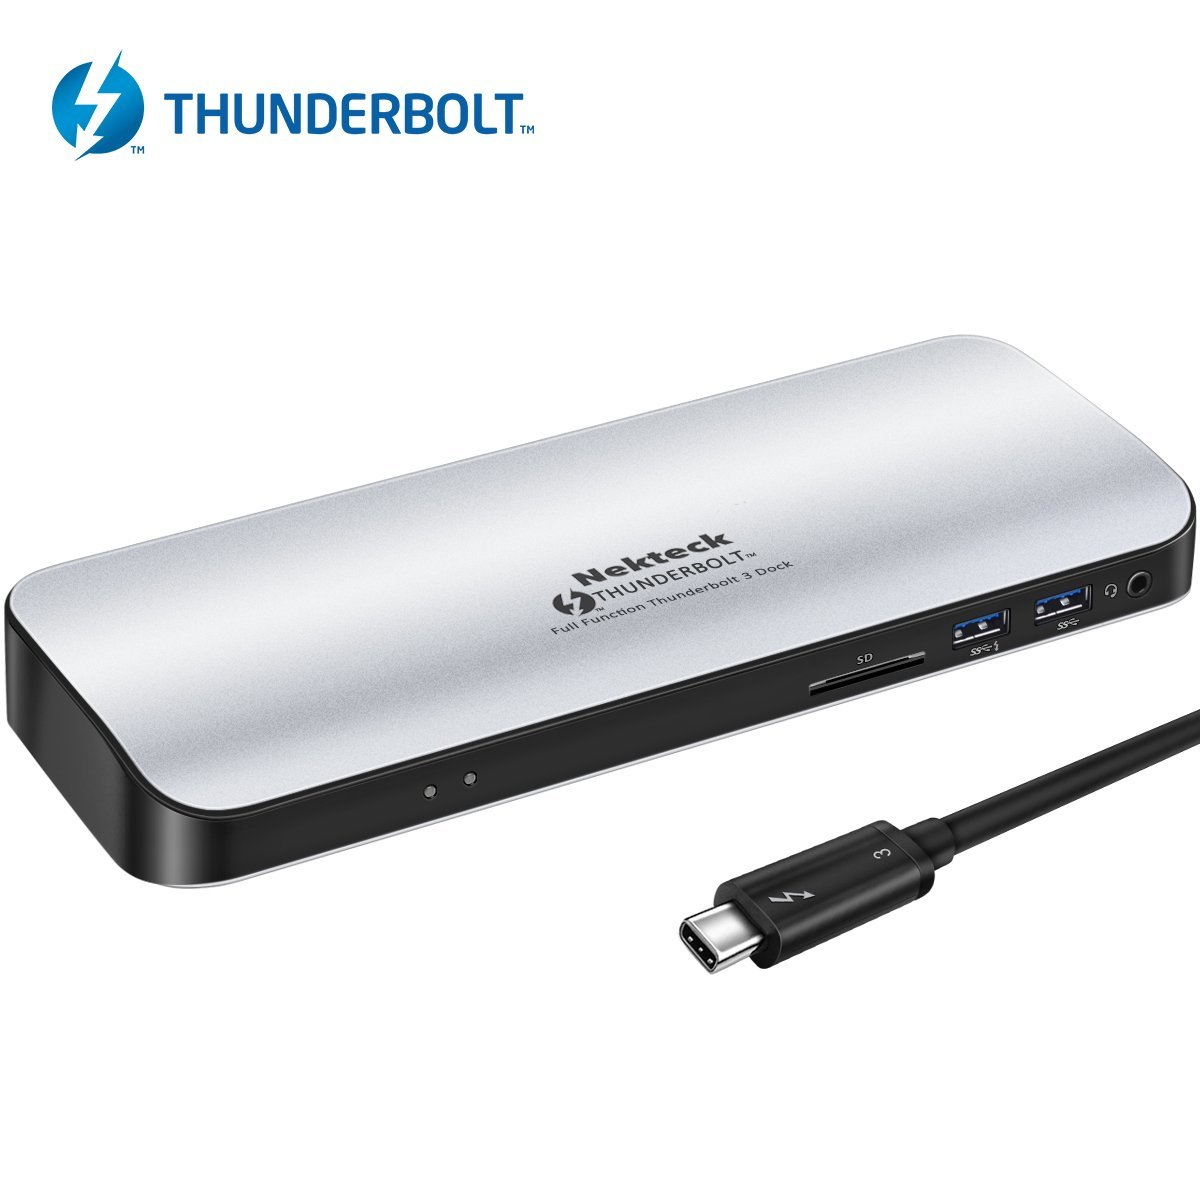 Nekteck Thunderbolt 3 PD Docking Station, Supports 4K HD Display, 60W Power Delivery by Nekteck